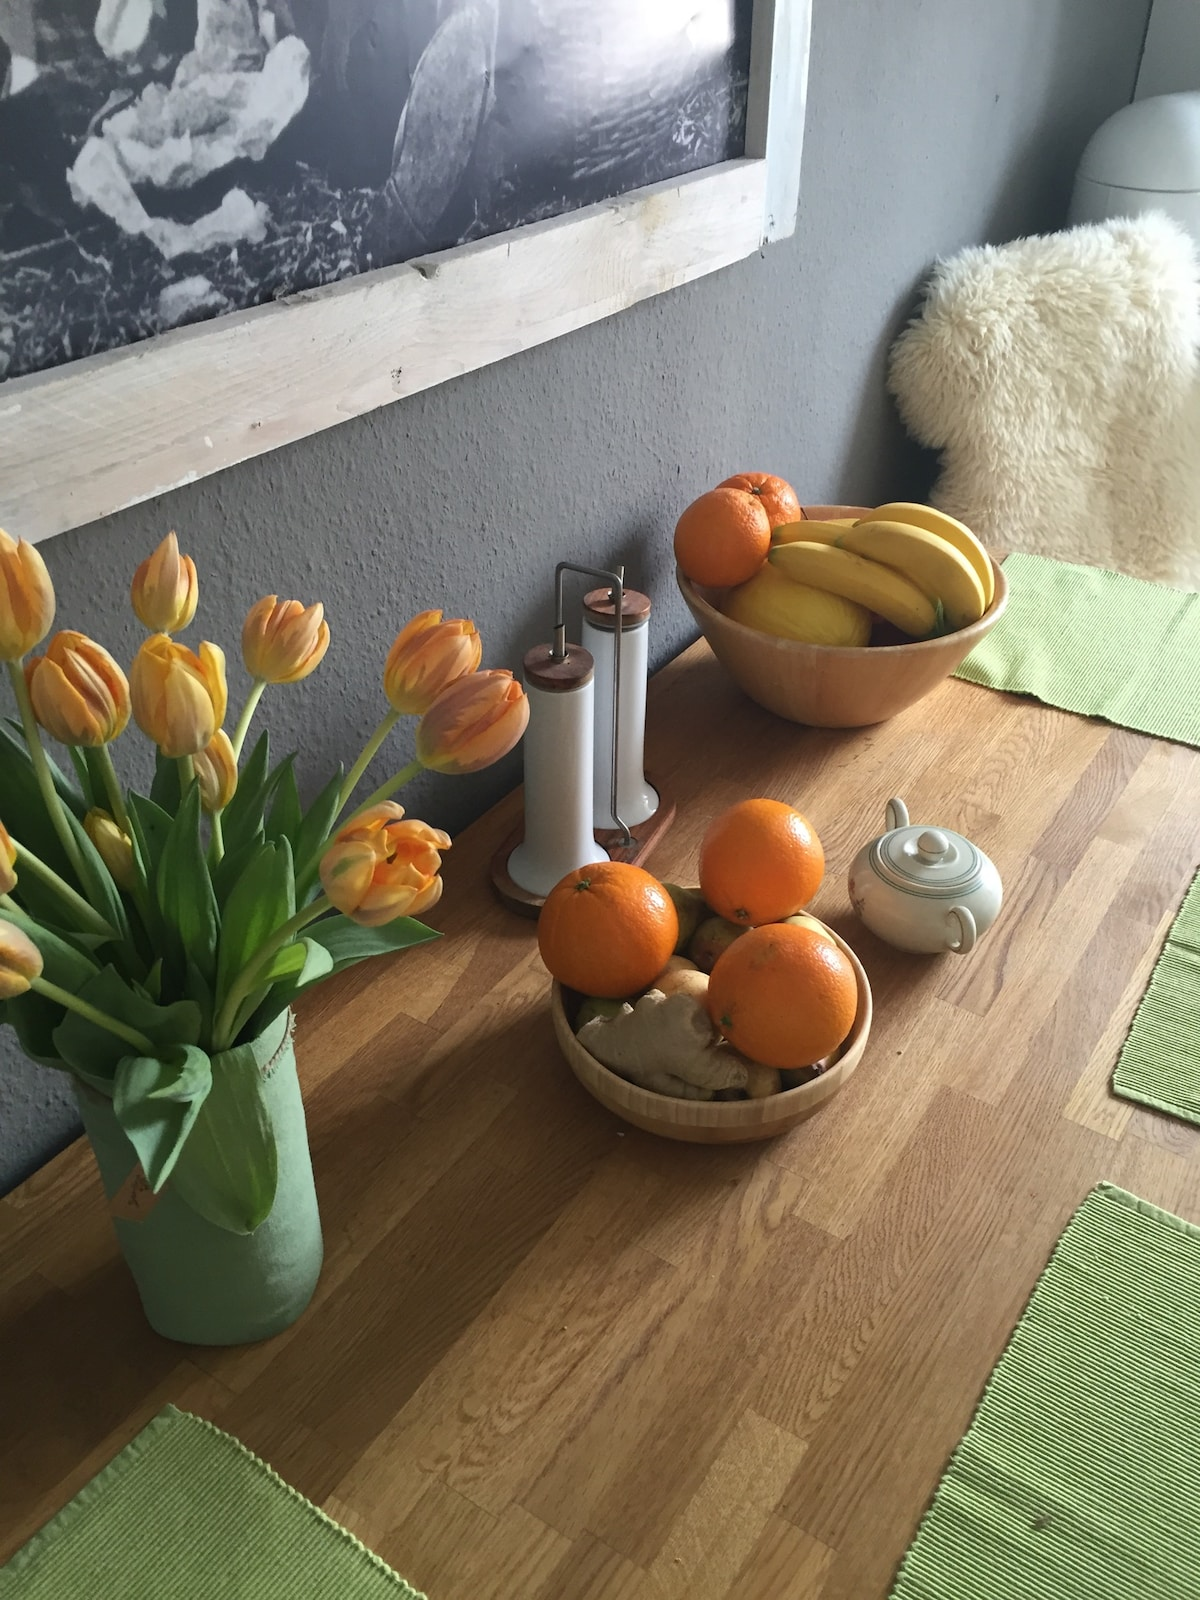 fresh fruits and Flowers are a must in my Apartment ..